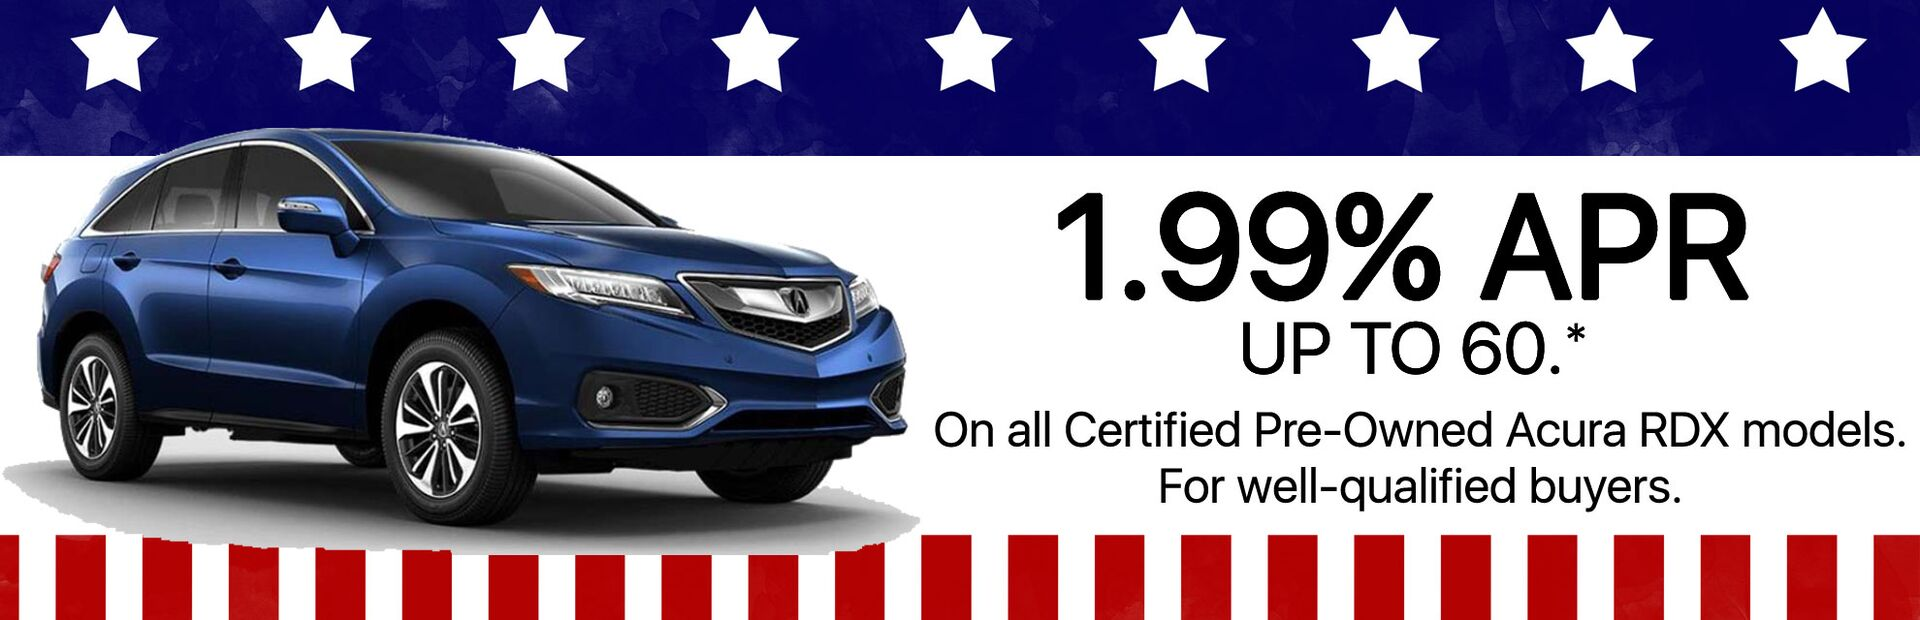 1.99% APR Incentives on Certified RDX at Marin Acura